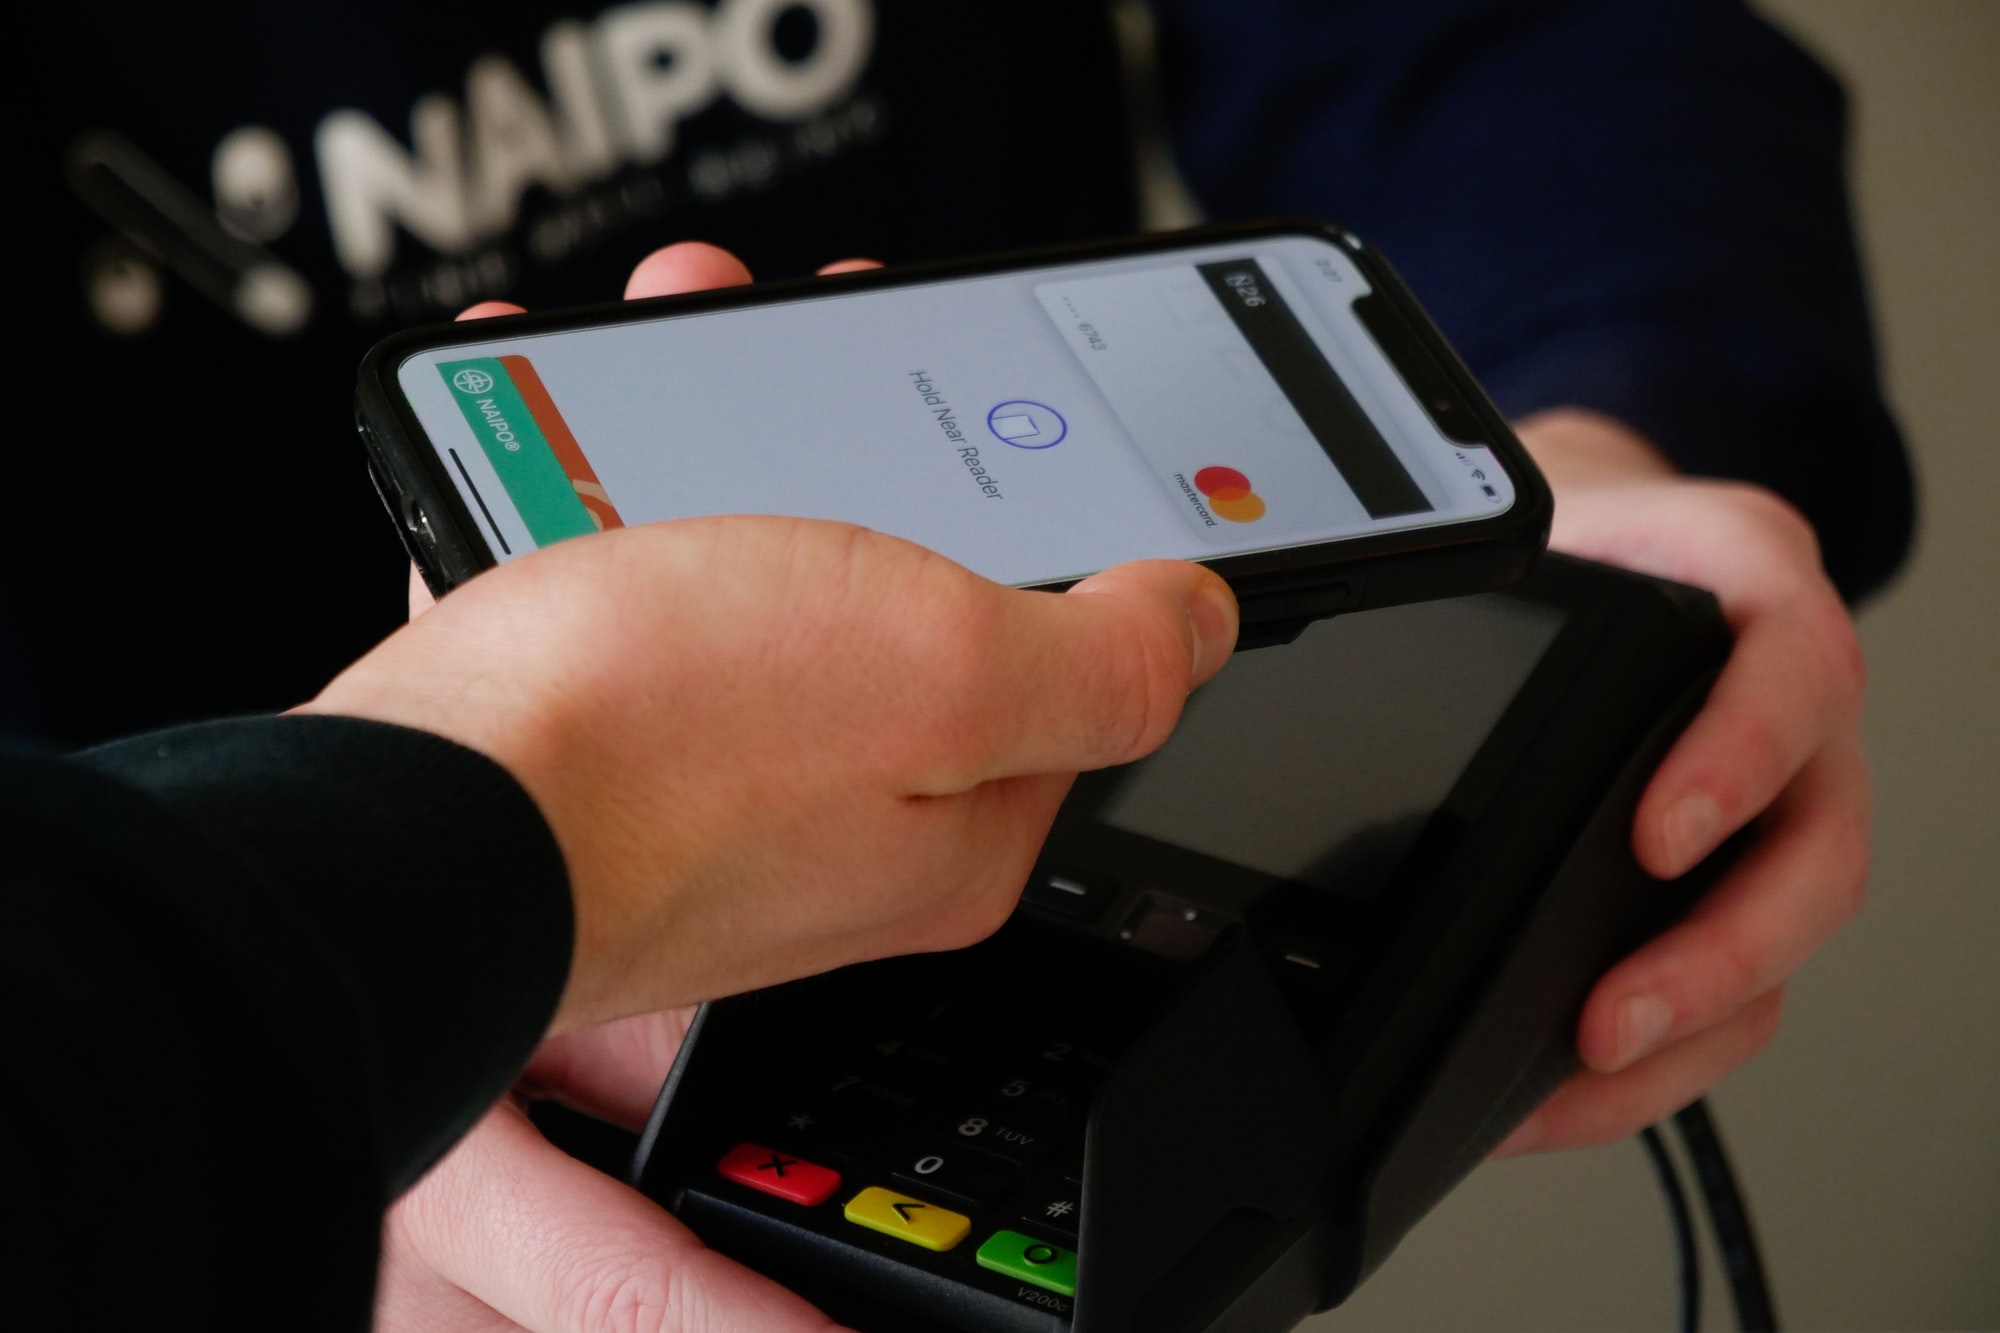 Trying Apple Pay